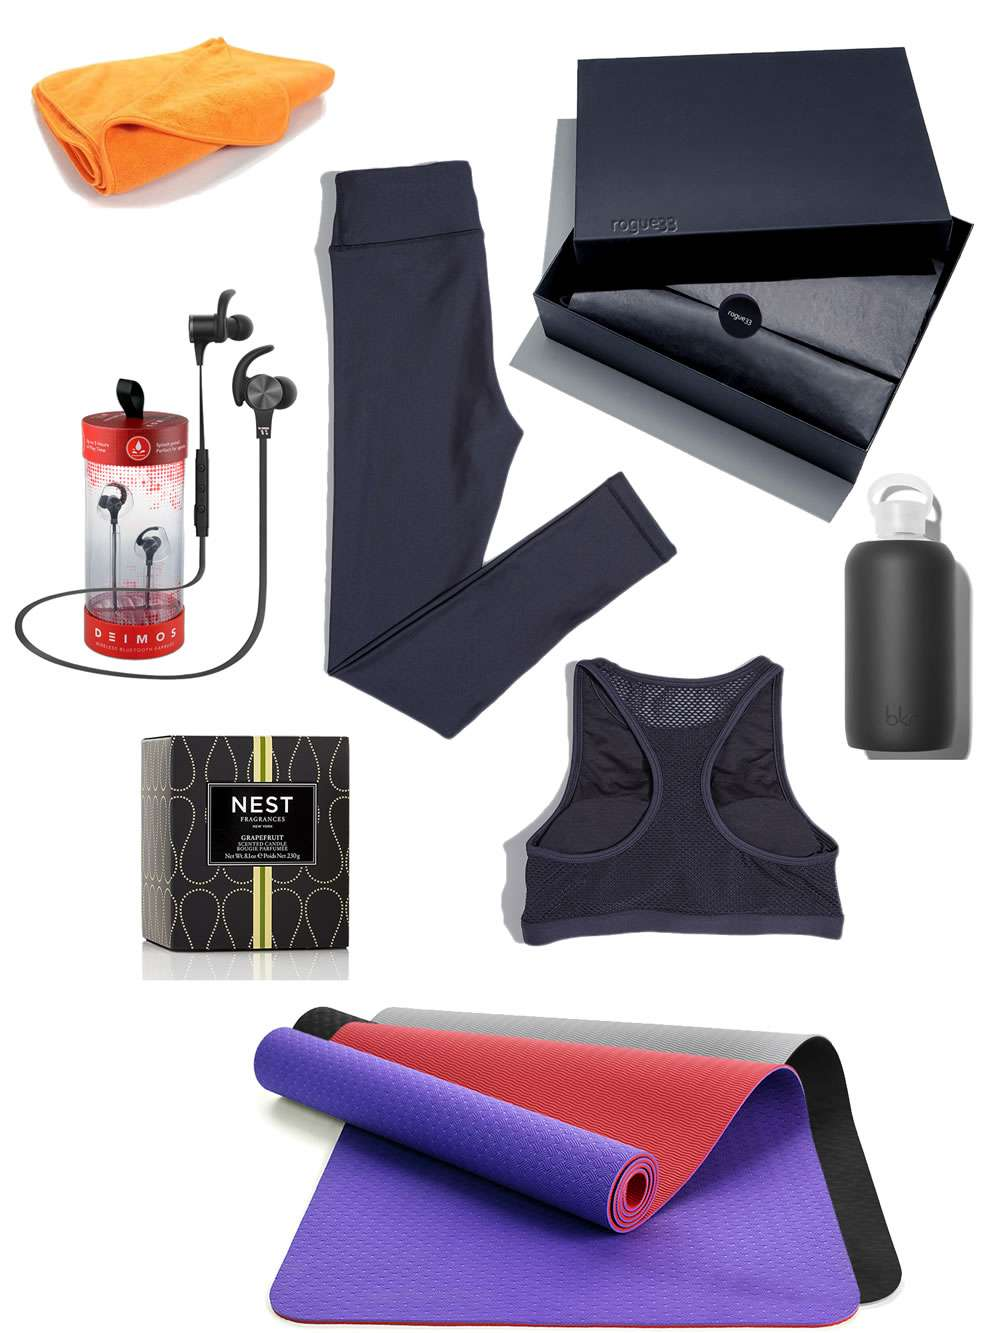 Get a  FREE  Core Starter Kit  VALUED AT $250  when you purchase Selected Nordictrack products through one of maybeyesno.com Site Links